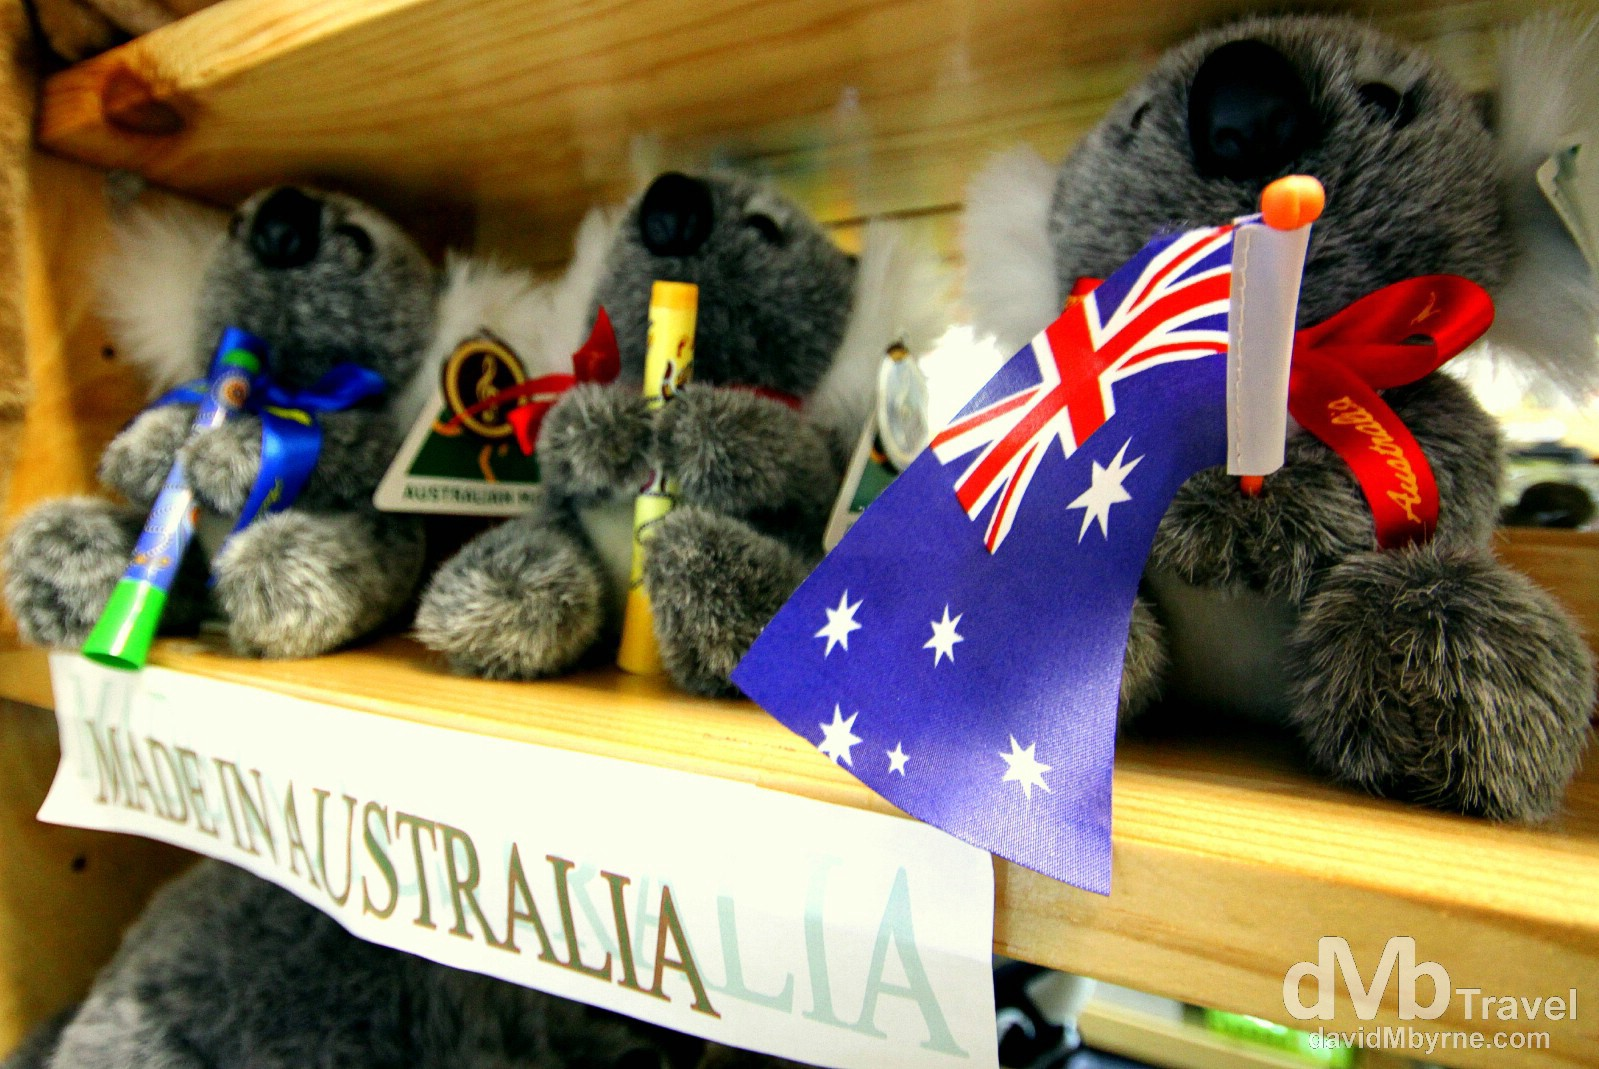 The Sunshine Coast isn't just about beaches & scenery. It has some nice mountain retreats, one of which is Montville, a fashionable village full of air & graces, Devonshire tea rooms & cottage crafts. It was in a tourist shop that I saw these stuffed, Made-In-China Koala bears which I thought were cute… & very Australian. There's gotta be some real koalas aroudn here somewhere. Travellers Treasures, Montville, Queensland, Australia. April 4th 2012.